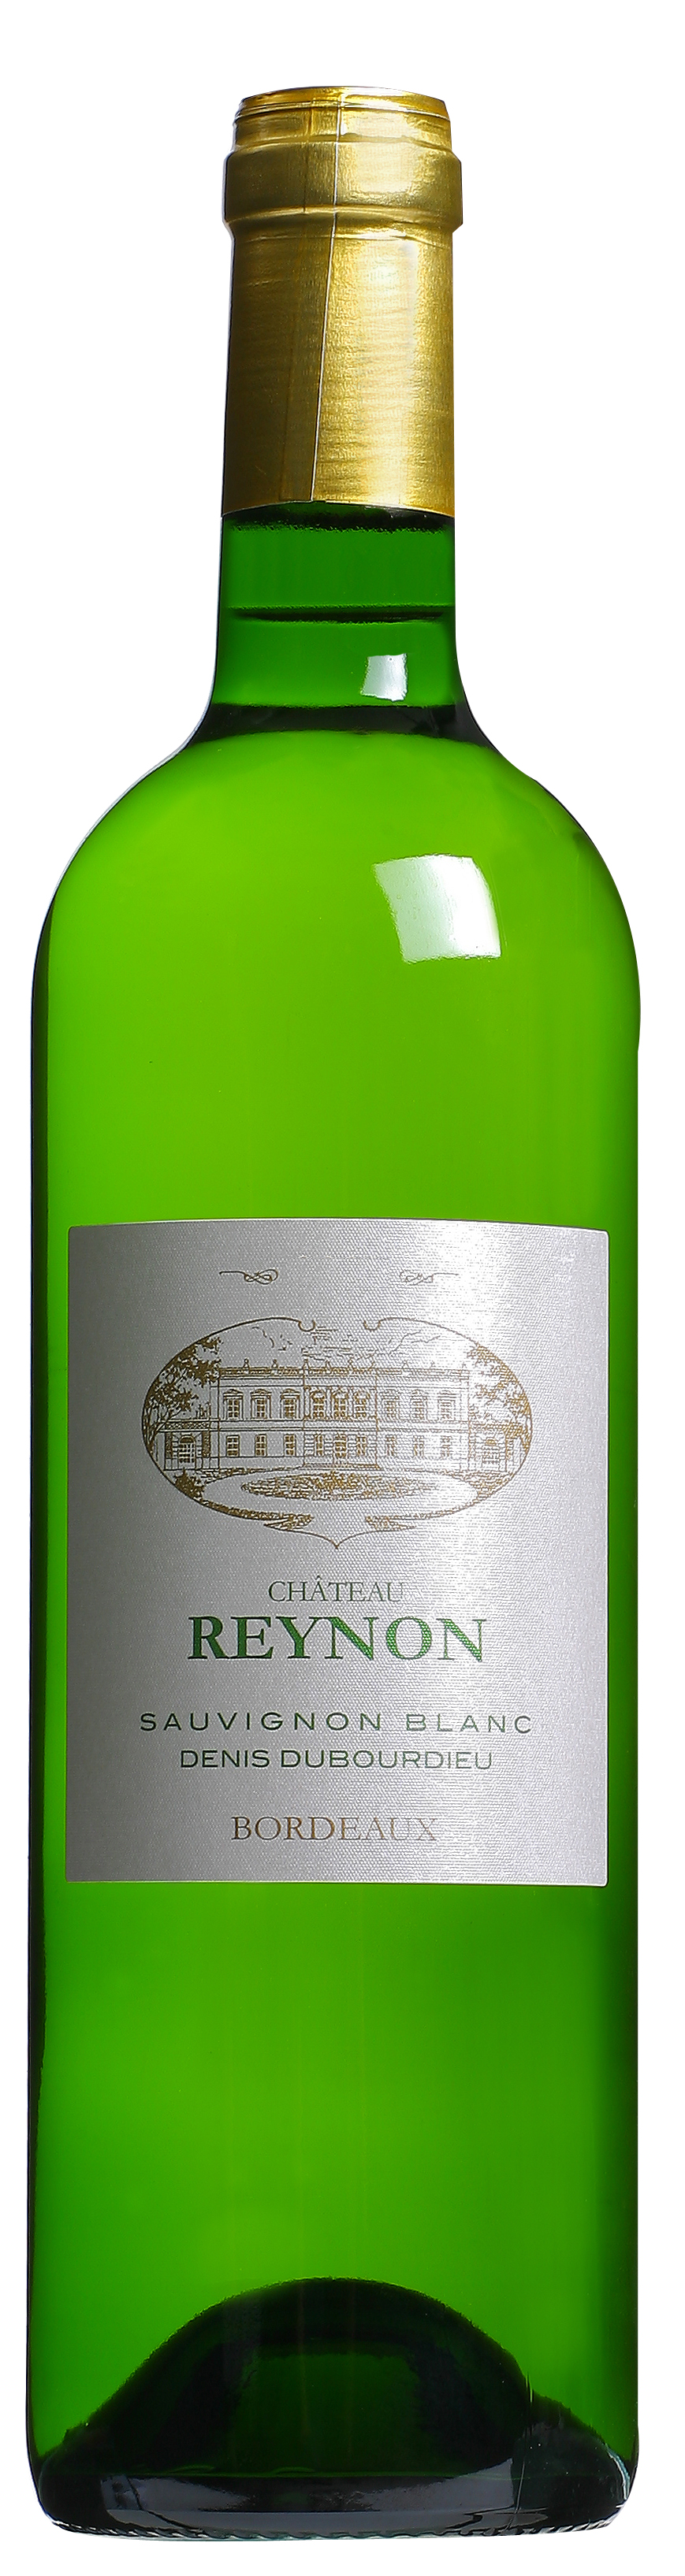 Chateau reynon premi res c tes de bordeaux blanc 2014 for Chateau reynon